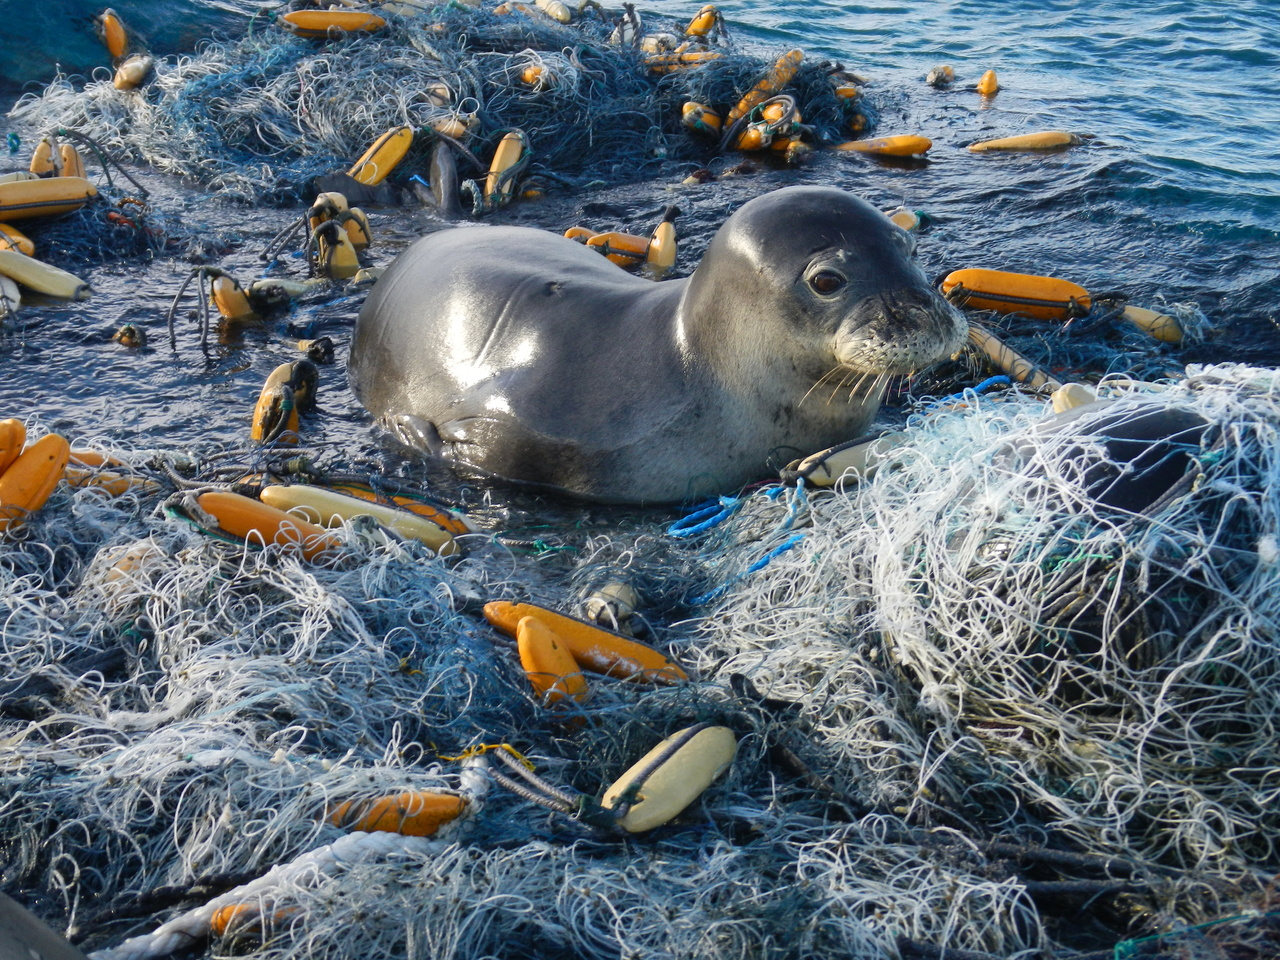 Hawaiian monk seal rests on a large derelict fishing net at Pearl and Hermes Atoll